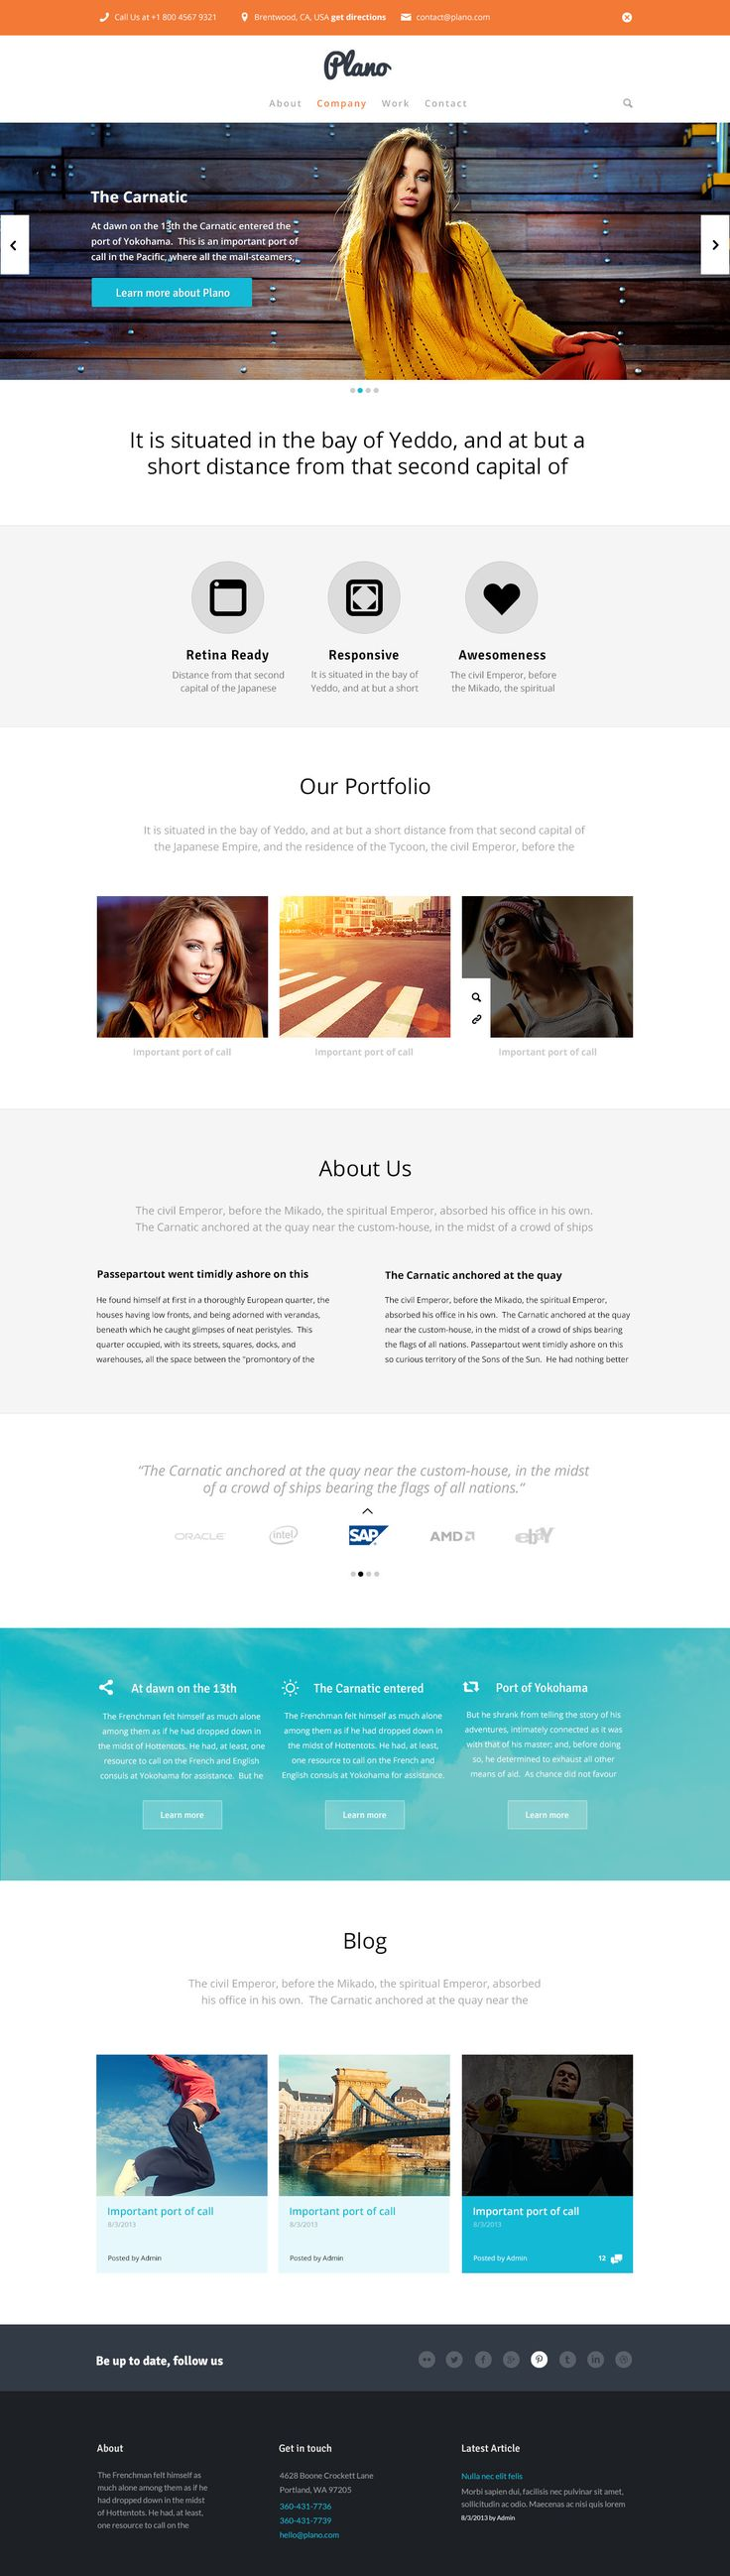 find this pin and more on web design ideas